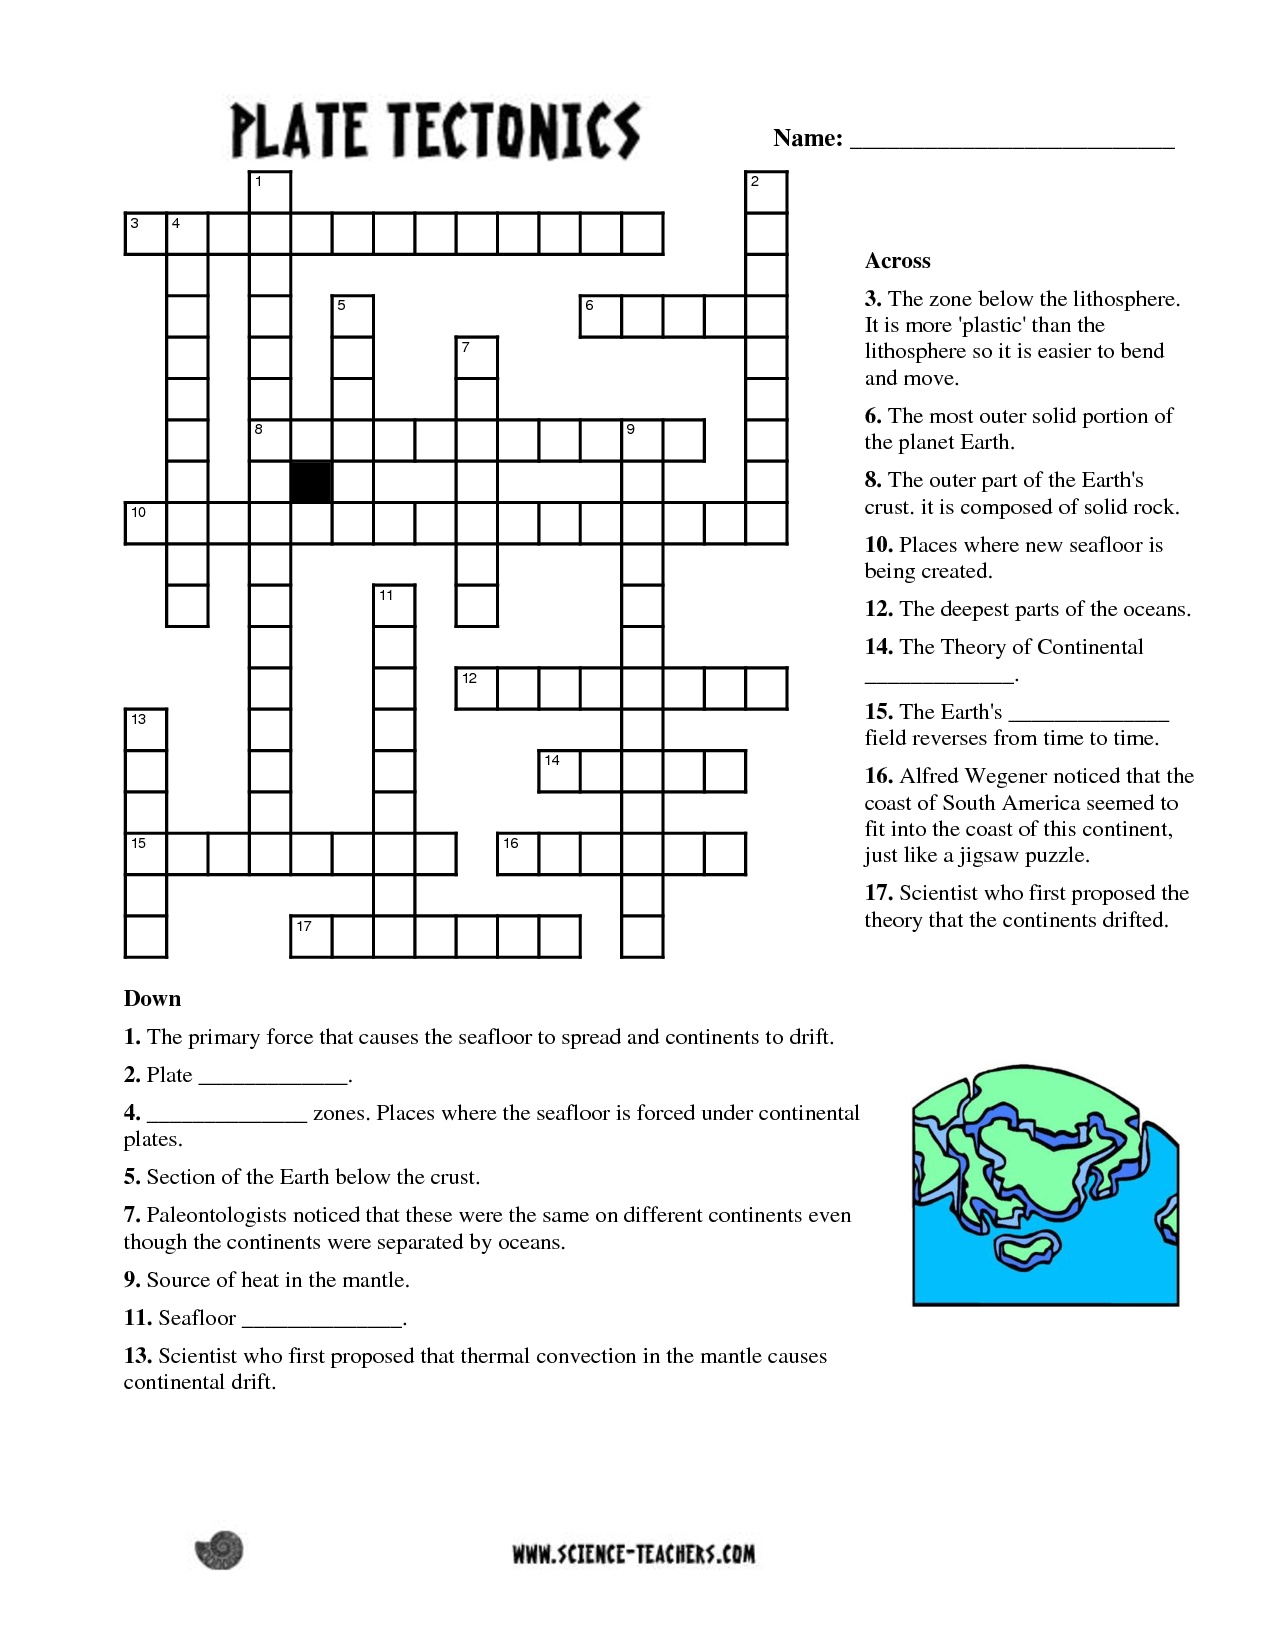 Planets Crossword Puzzle Worksheet - Pics About Space | Fun Science - Printable Science Puzzle